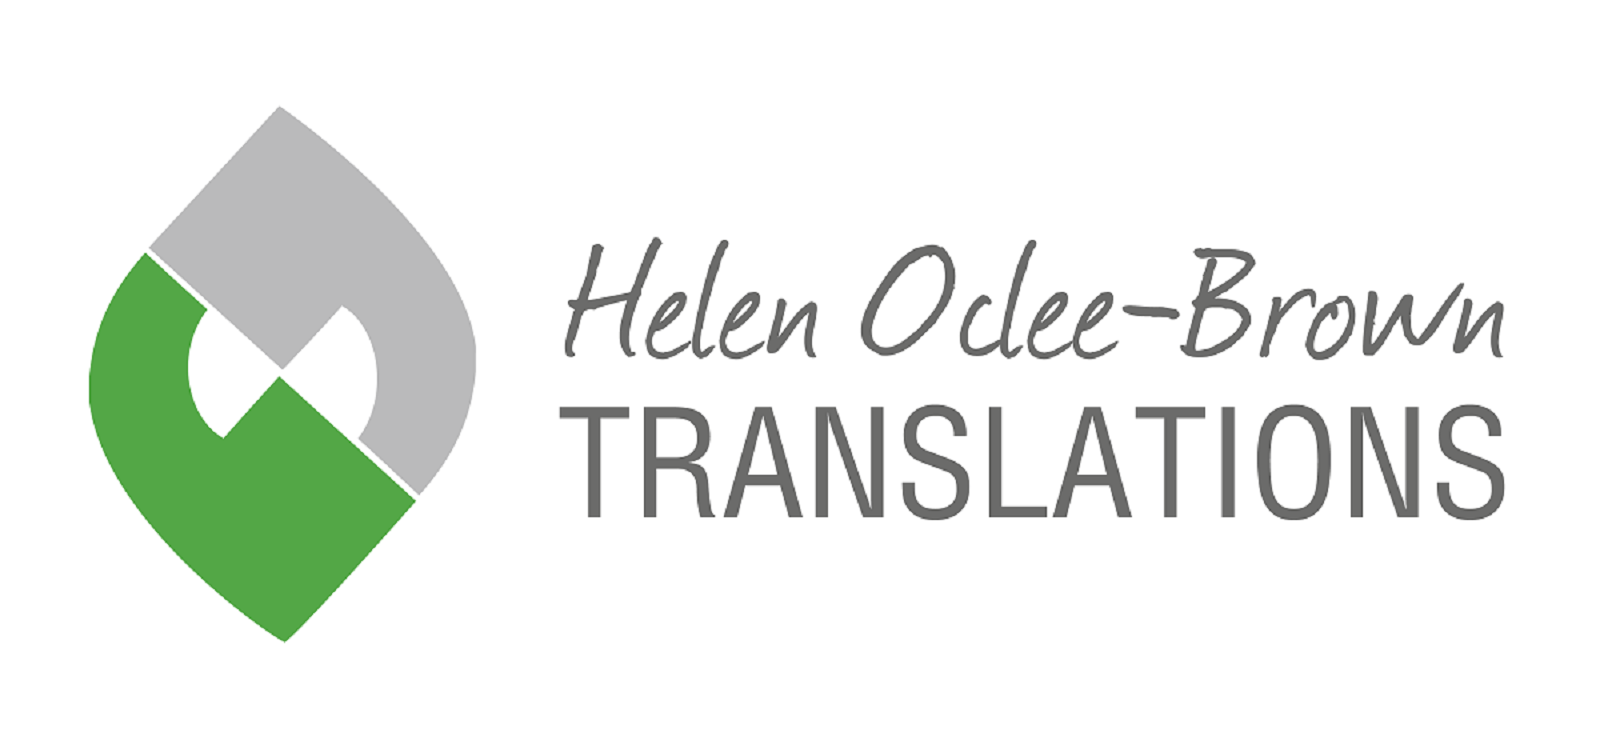 Helen Oclee-Brown Translations